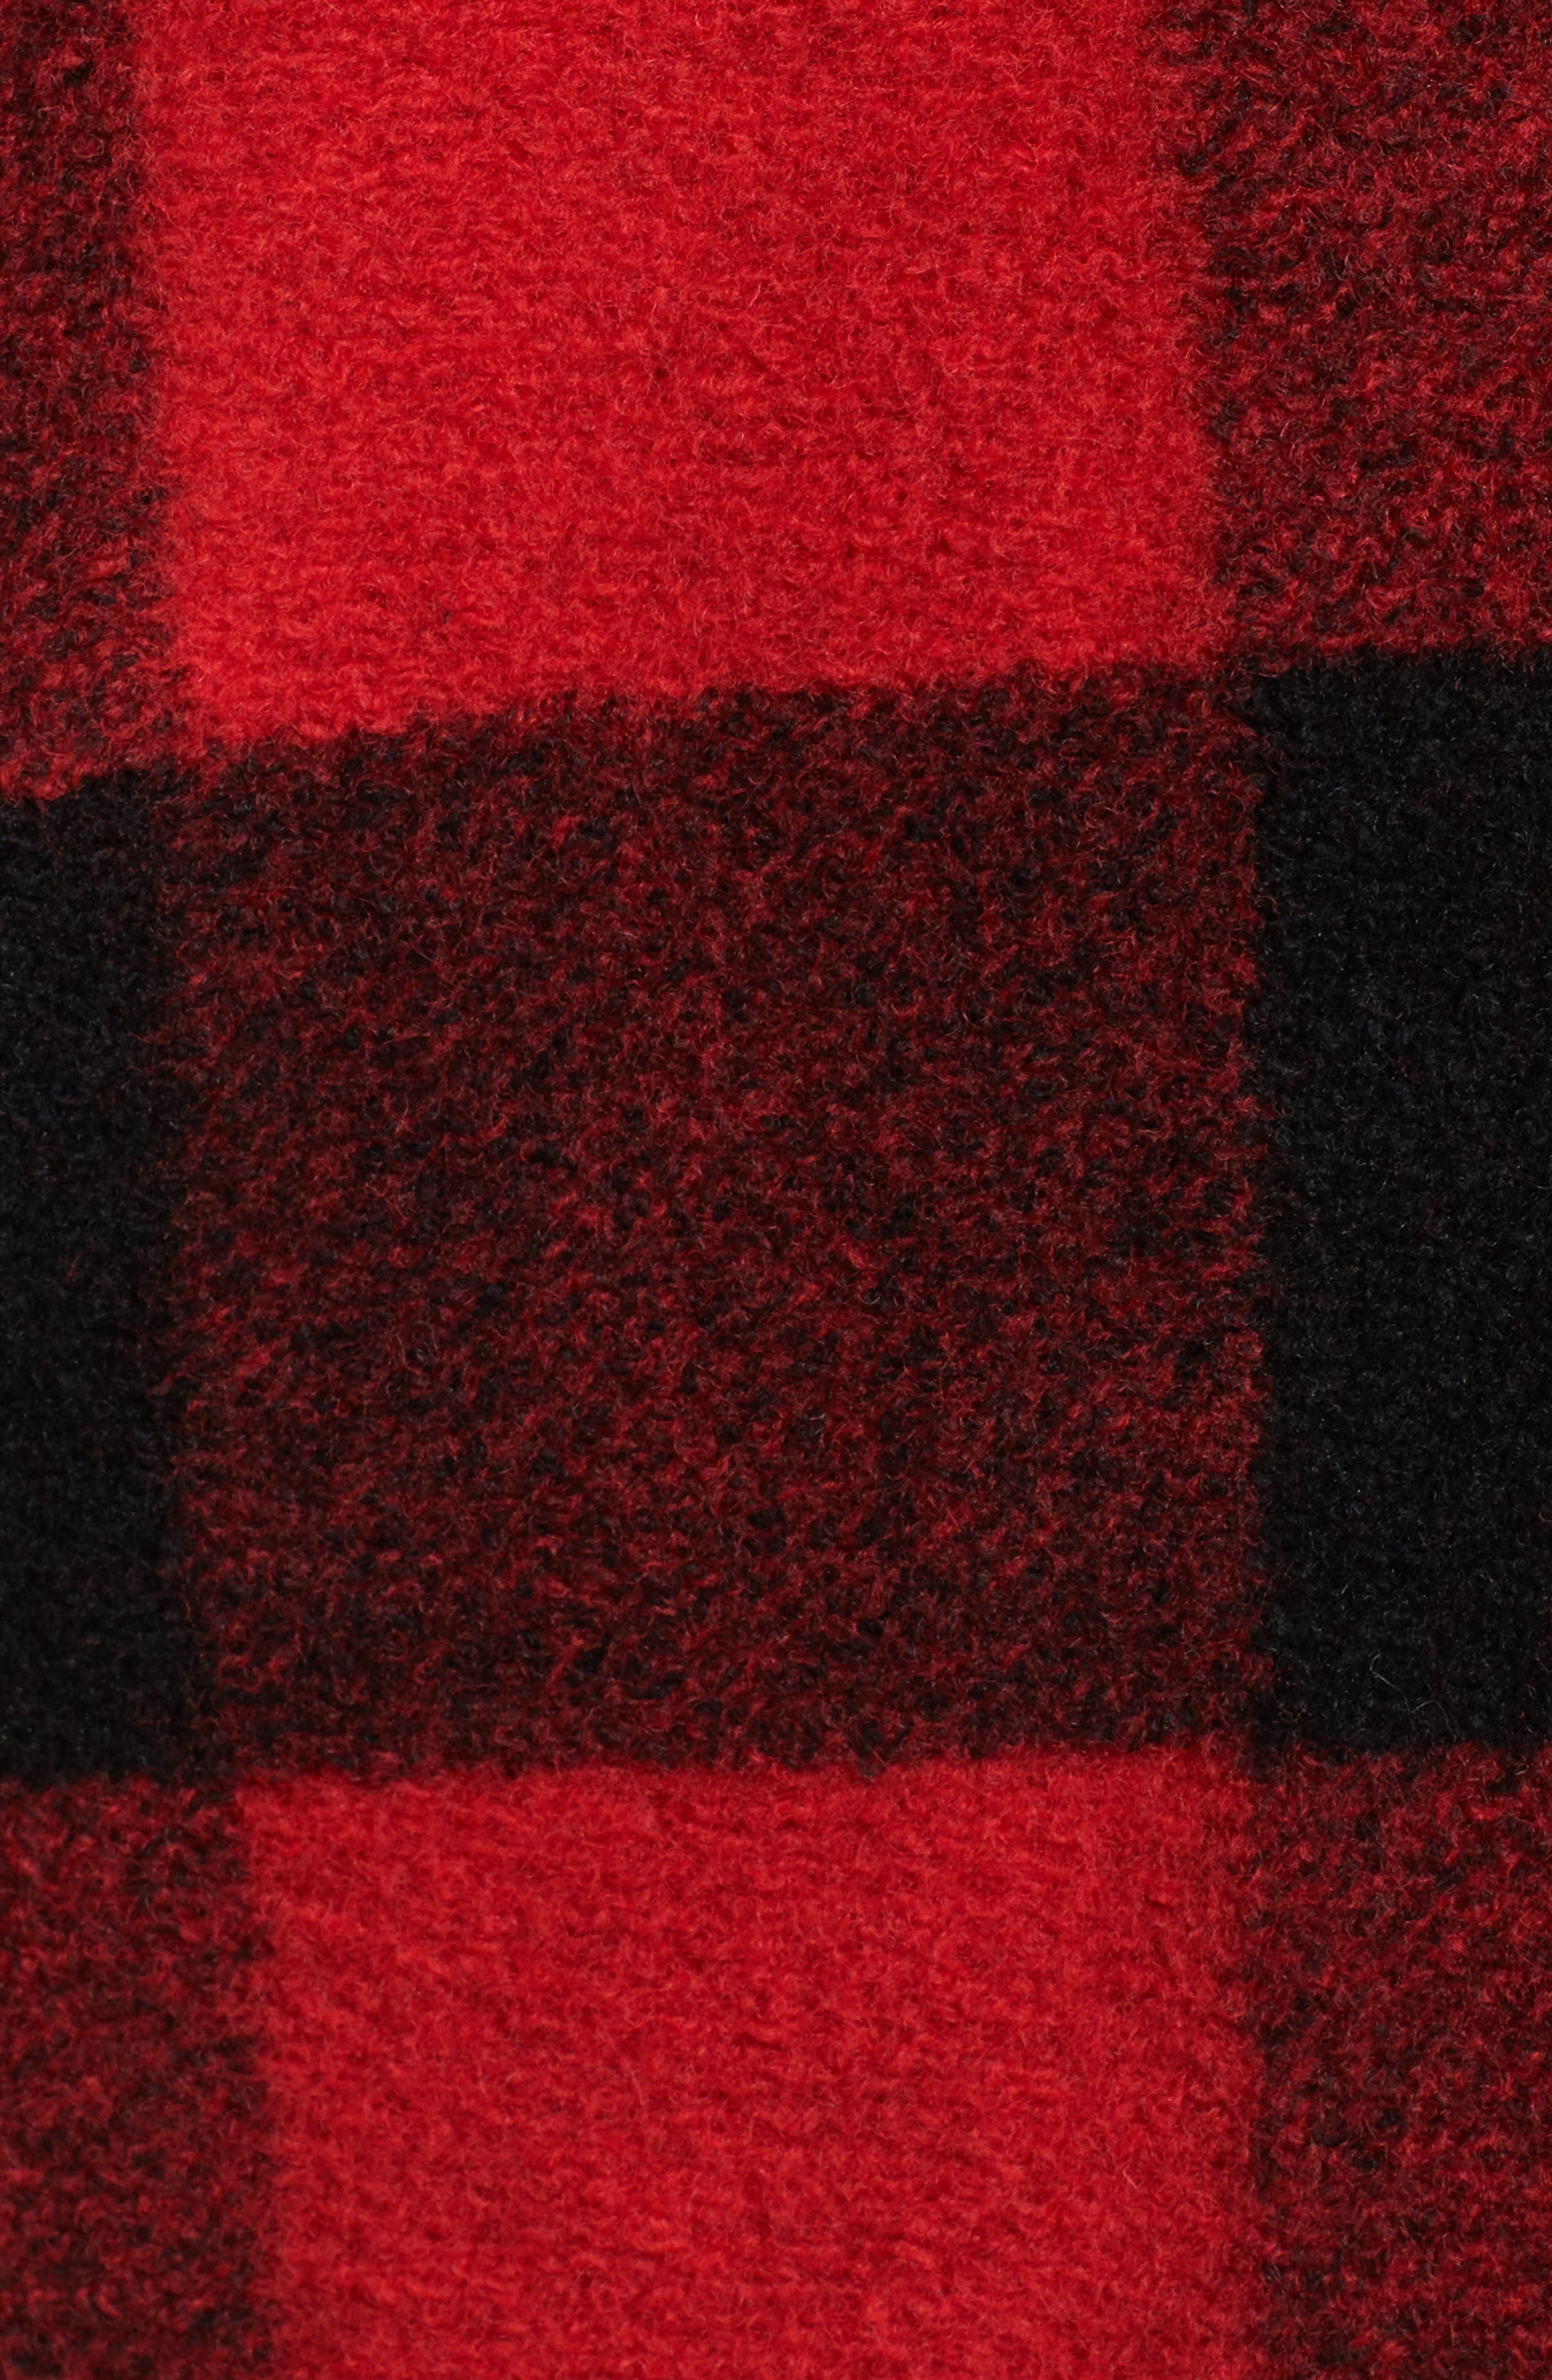 Paul Bunyan Plaid Wool Blend Barn Coat,                             Alternate thumbnail 12, color,